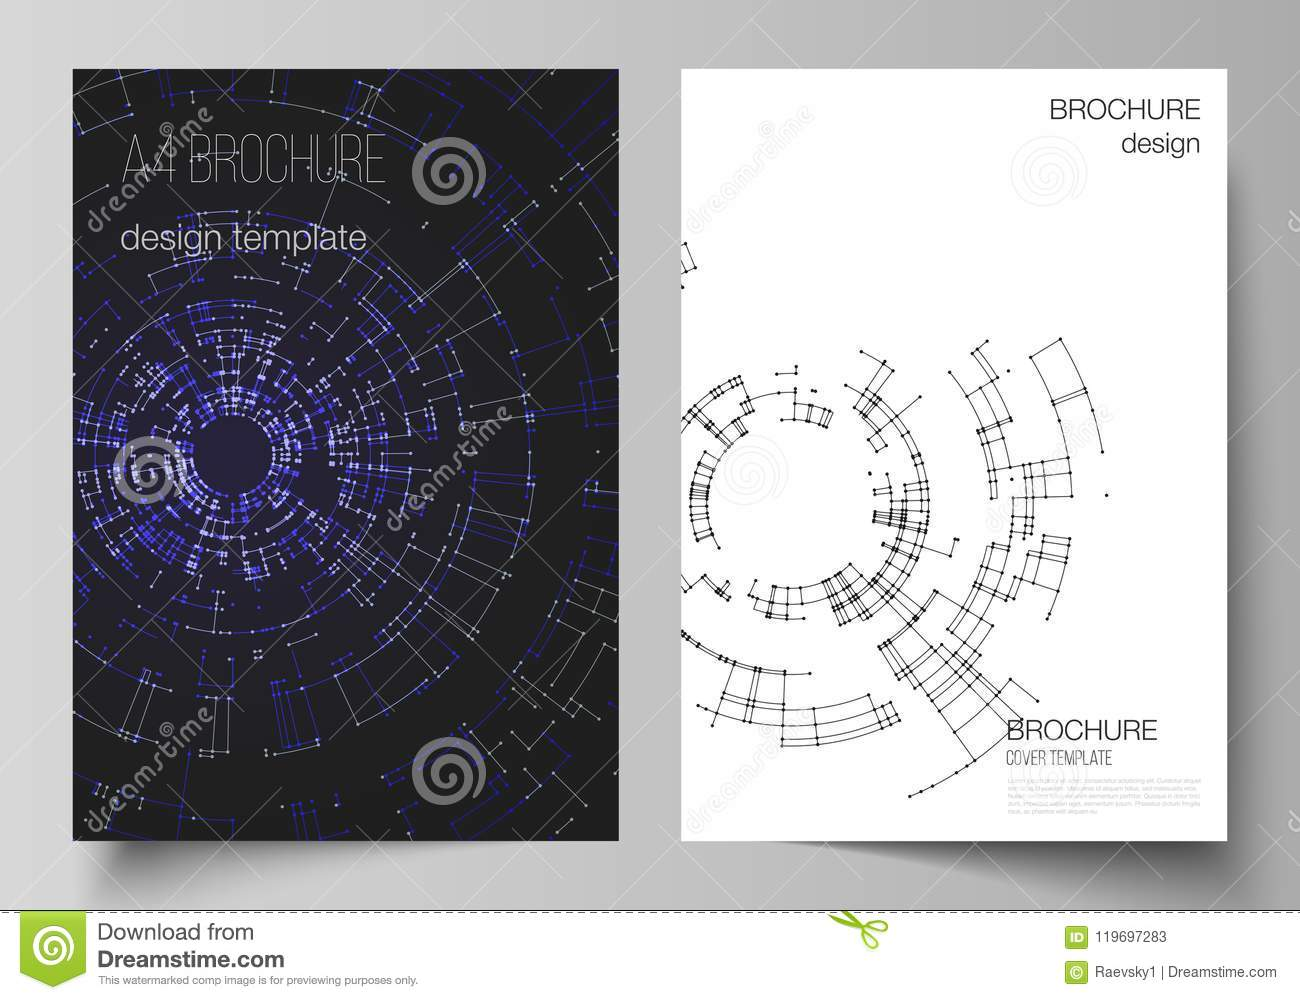 The Vector Layout Of A4 Format Cover Mockups Design Templates For ...